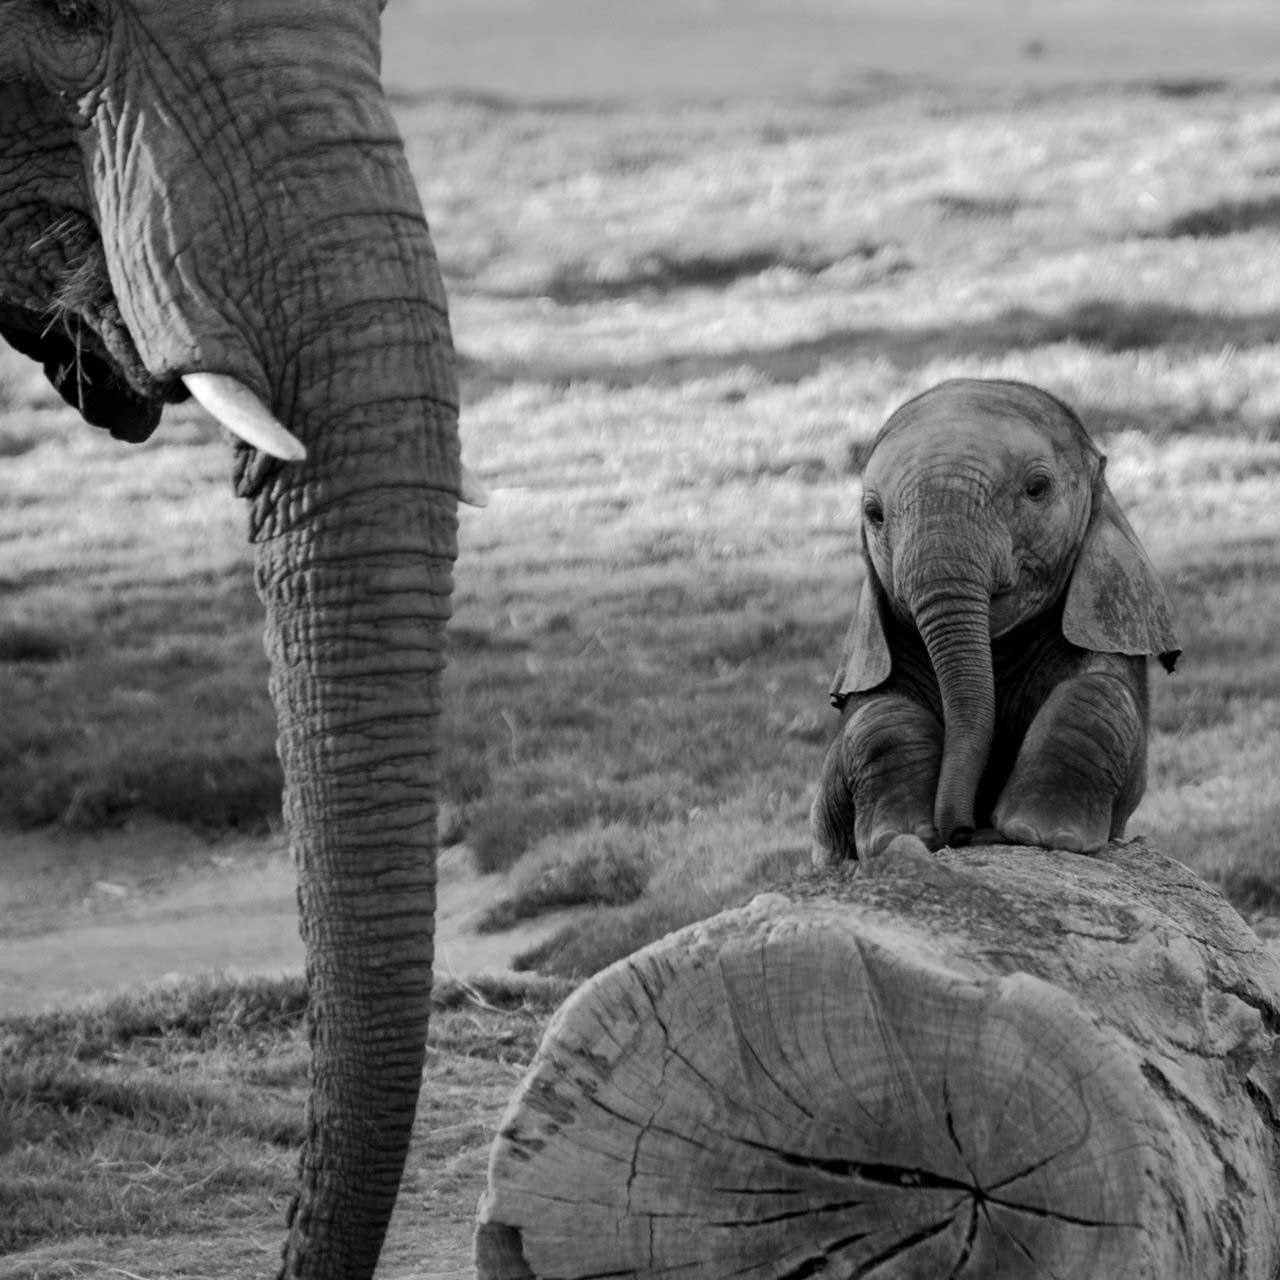 Funny animals of the week - 7 February 2014 (40 pics), back and white photo of baby elephant